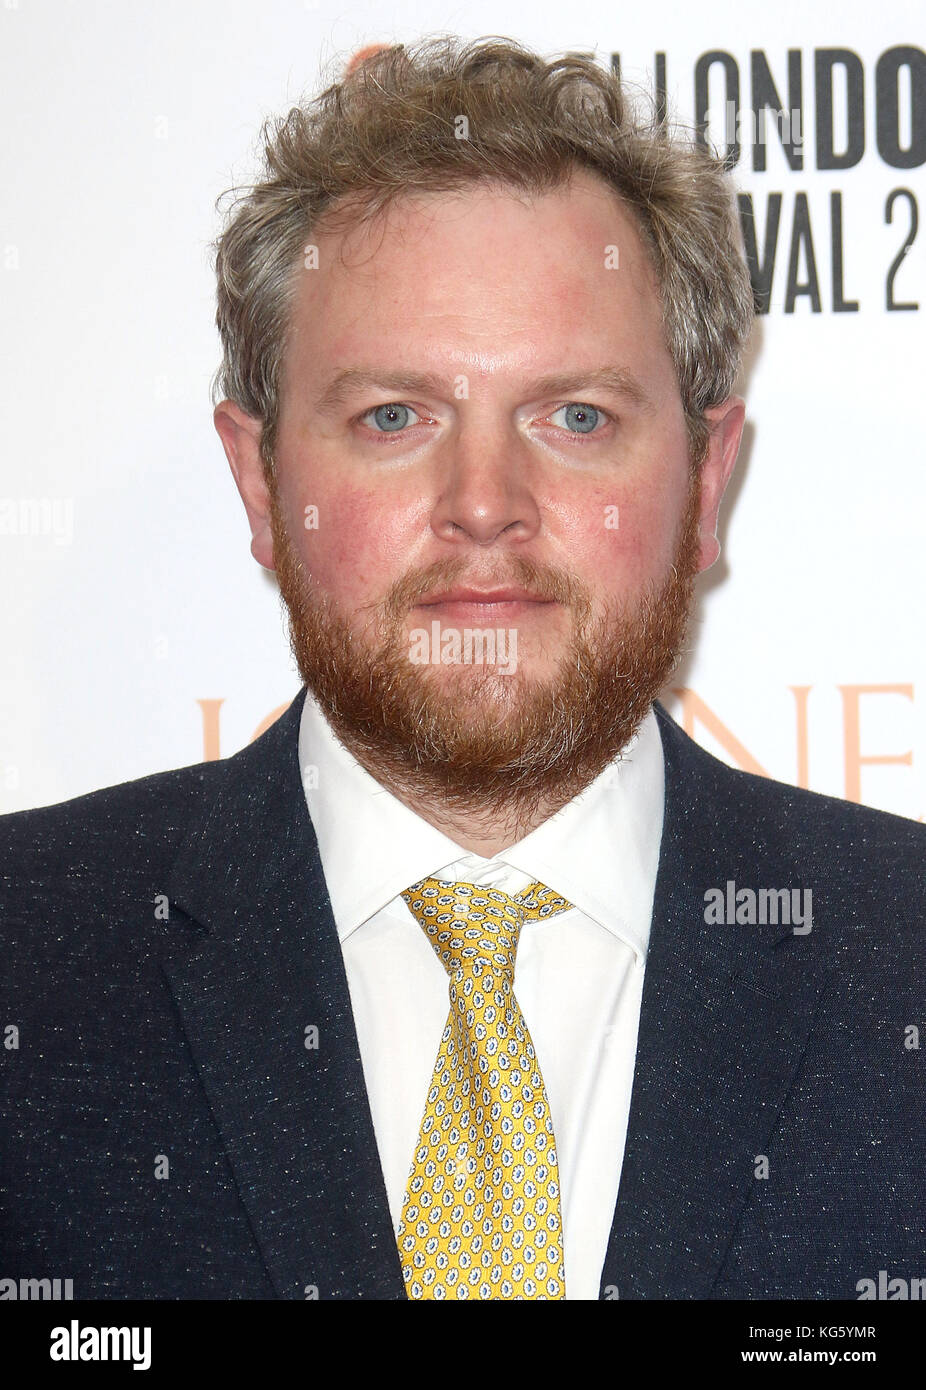 Oct 06, 2017 - Miles Jupp attending 'Journey's End' European Premiere, Odeon Leicester Square in London, - Stock Image